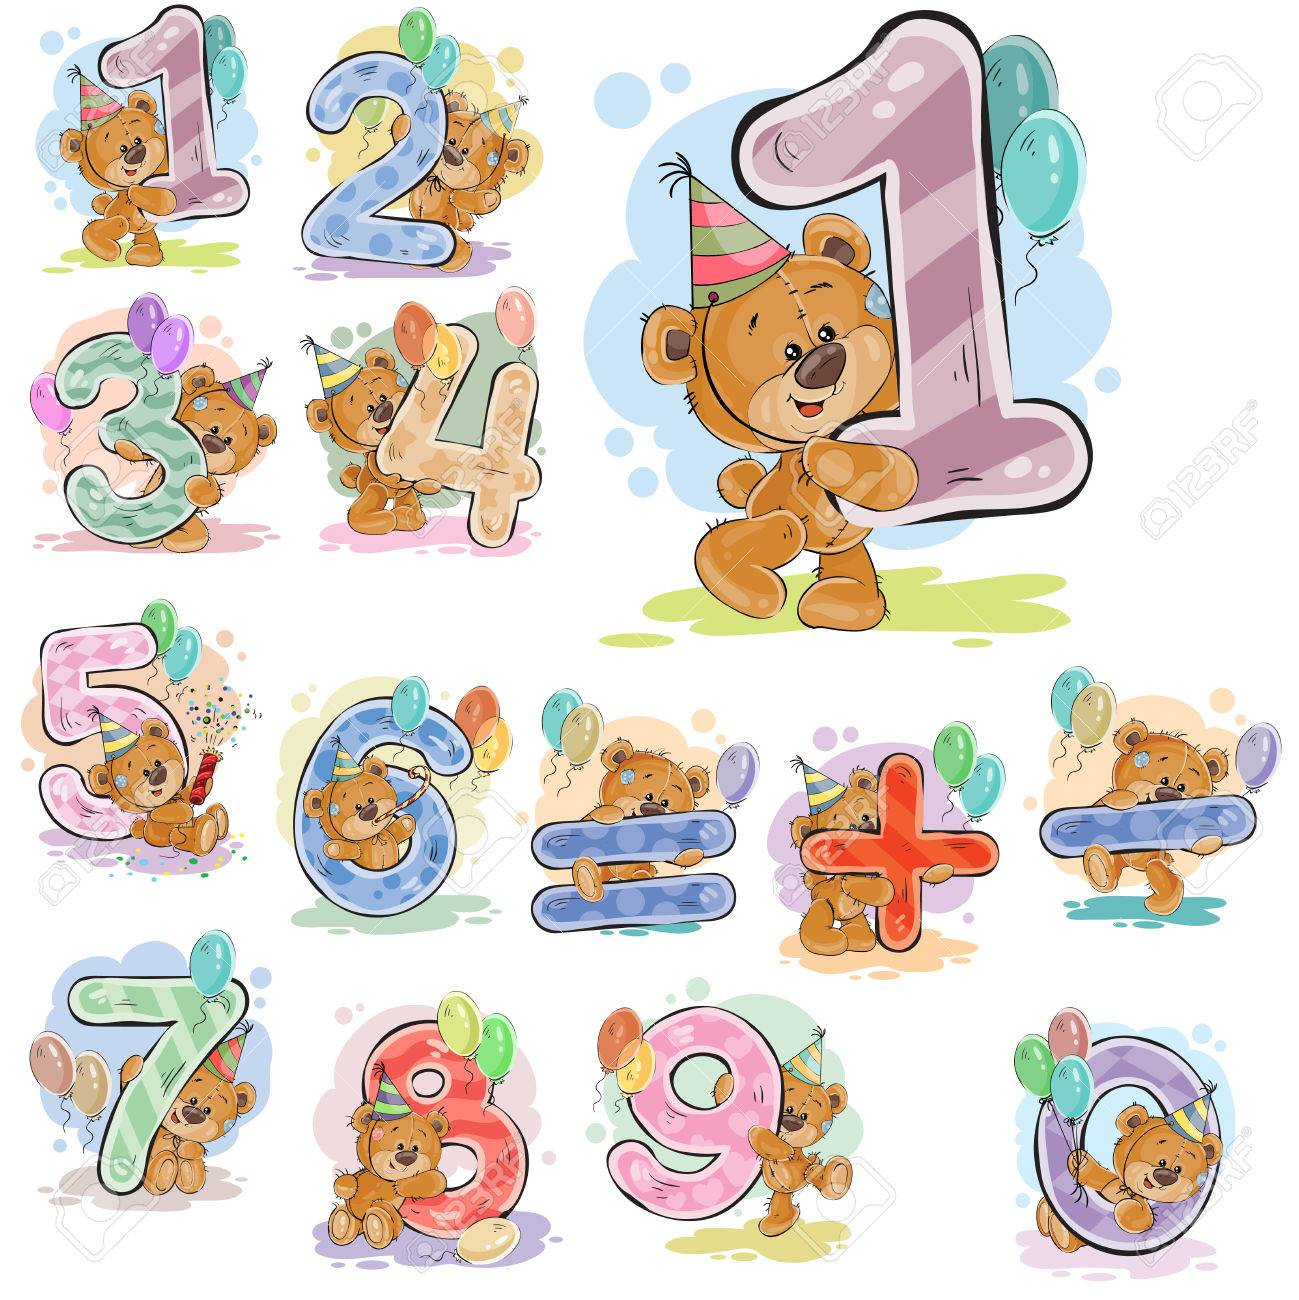 A set of vector illustrations with a brown teddy bear and numerals and mathematical symbols. - 78787082